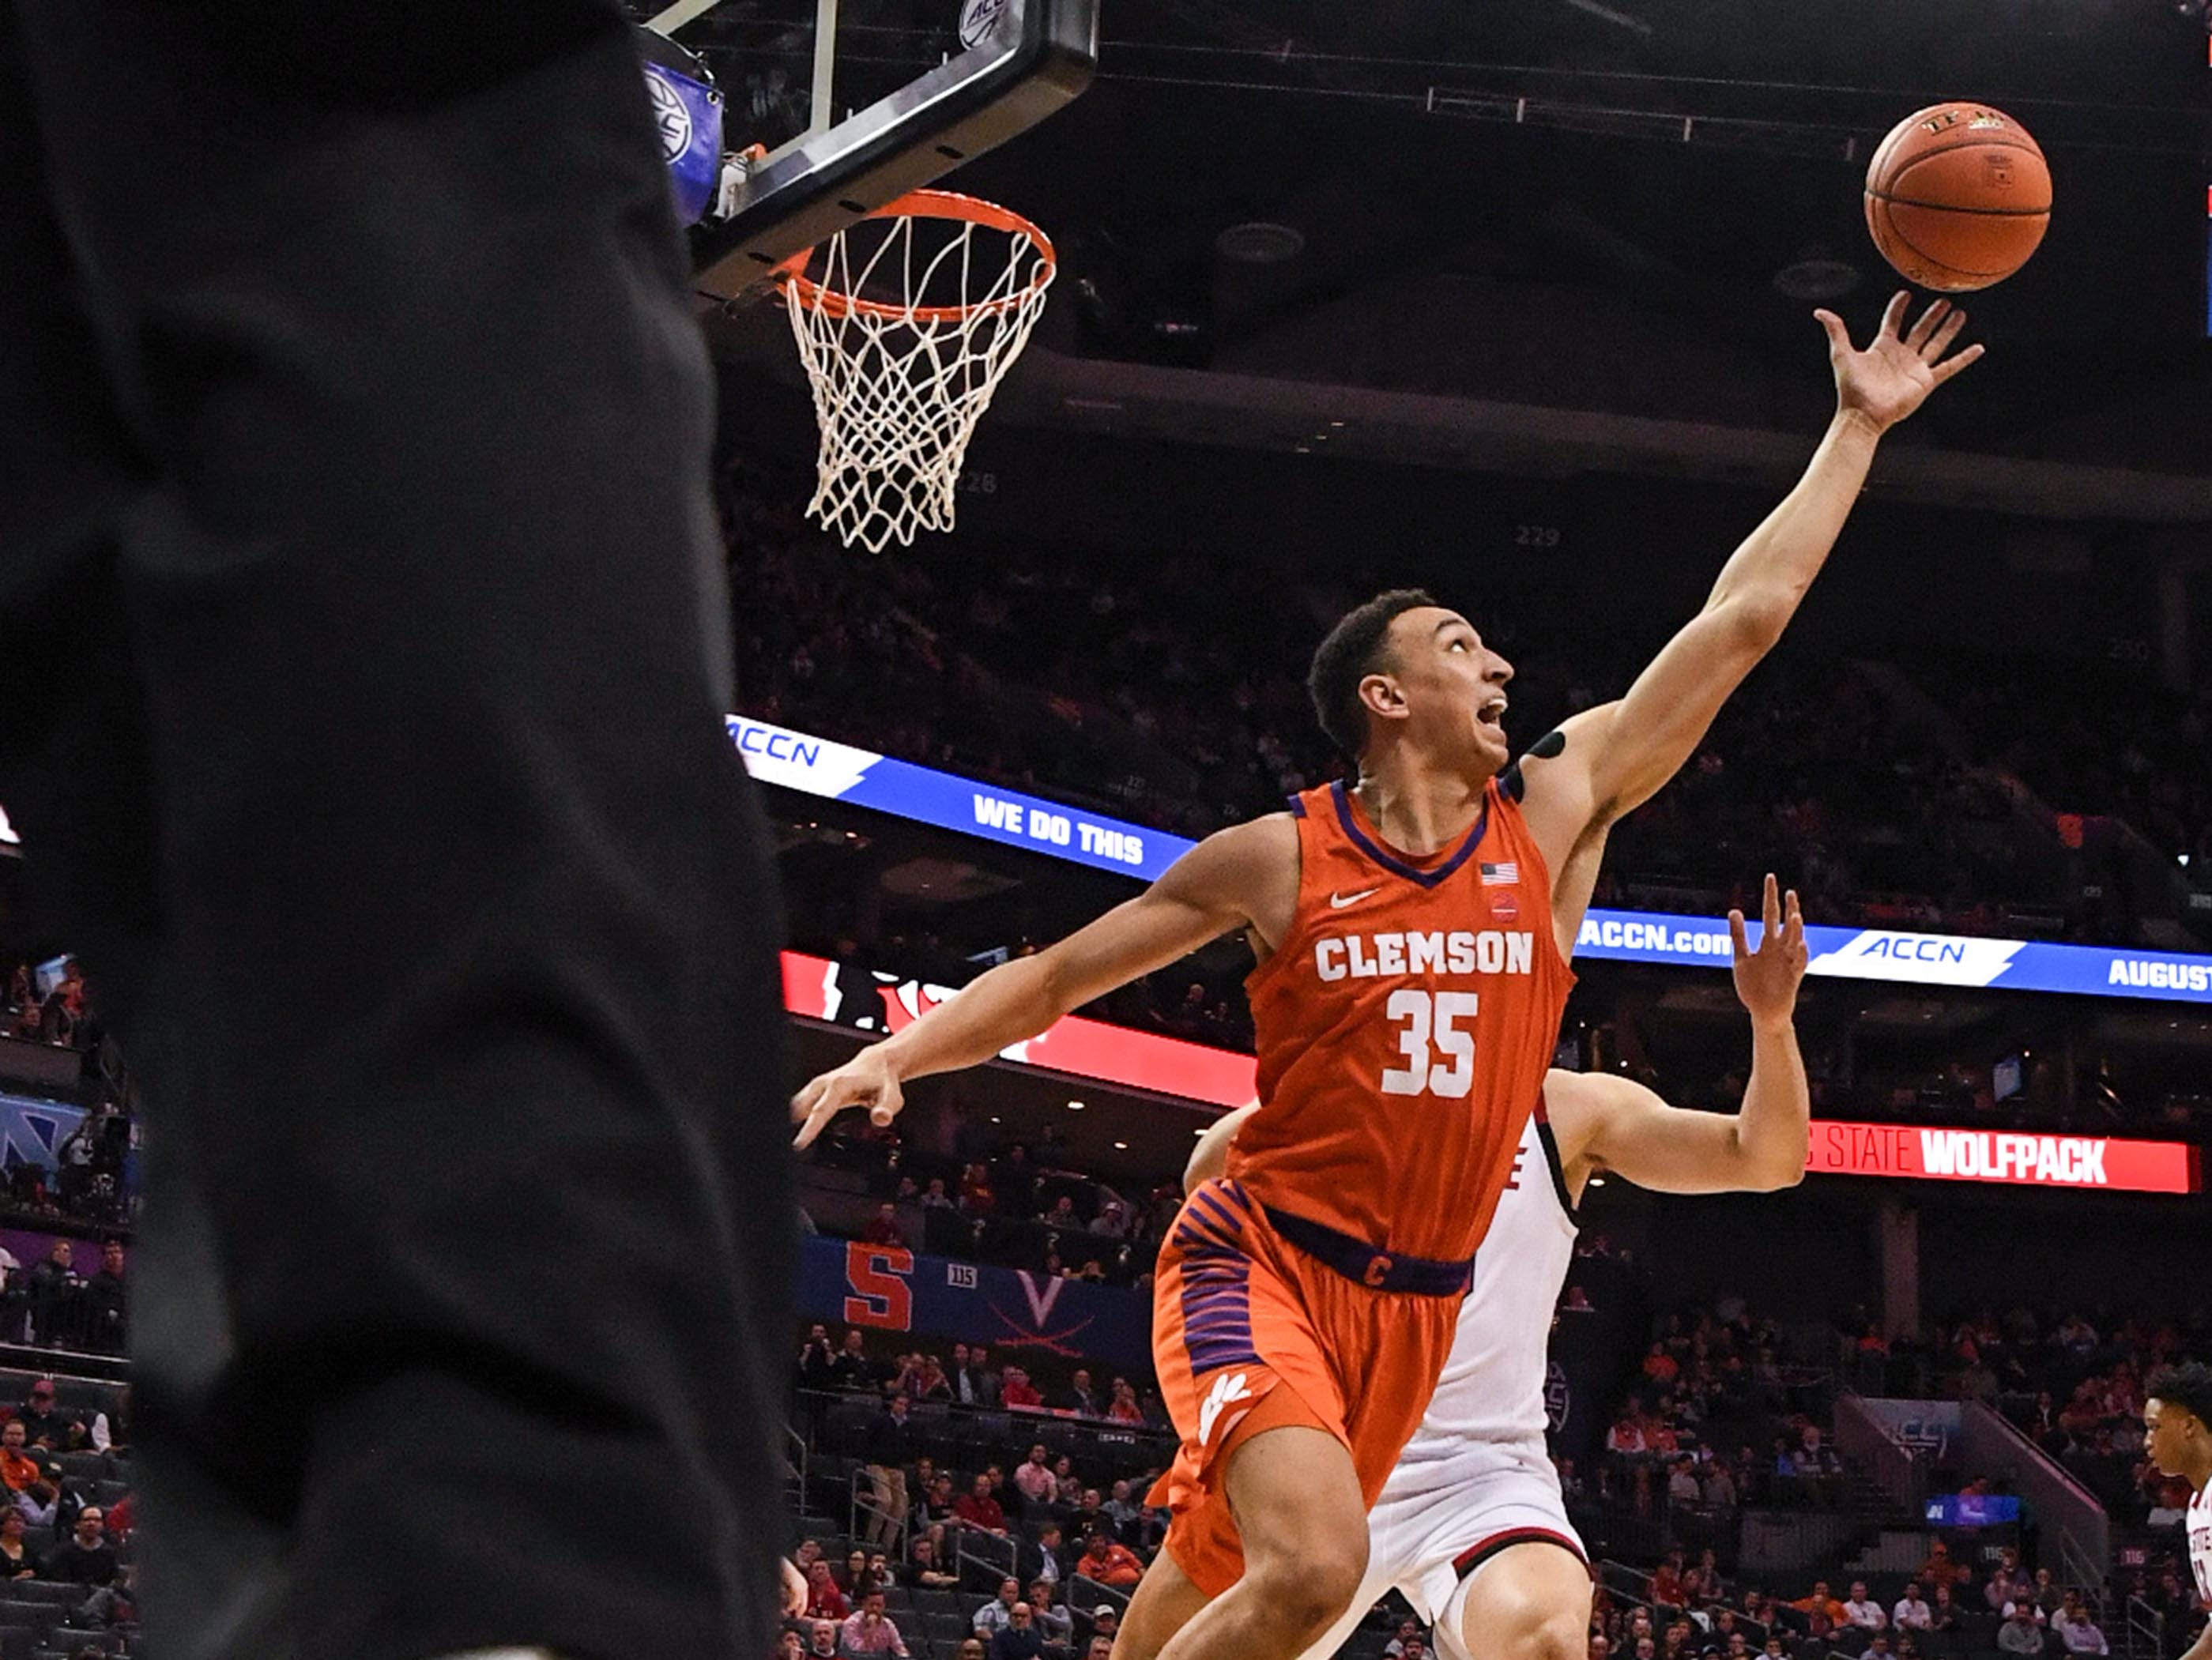 Clemson forward Javan White (35) reaches for a ball during the second half at the Spectrum Center in Charlotte, N.C. Tuesday, March 12, 2019.